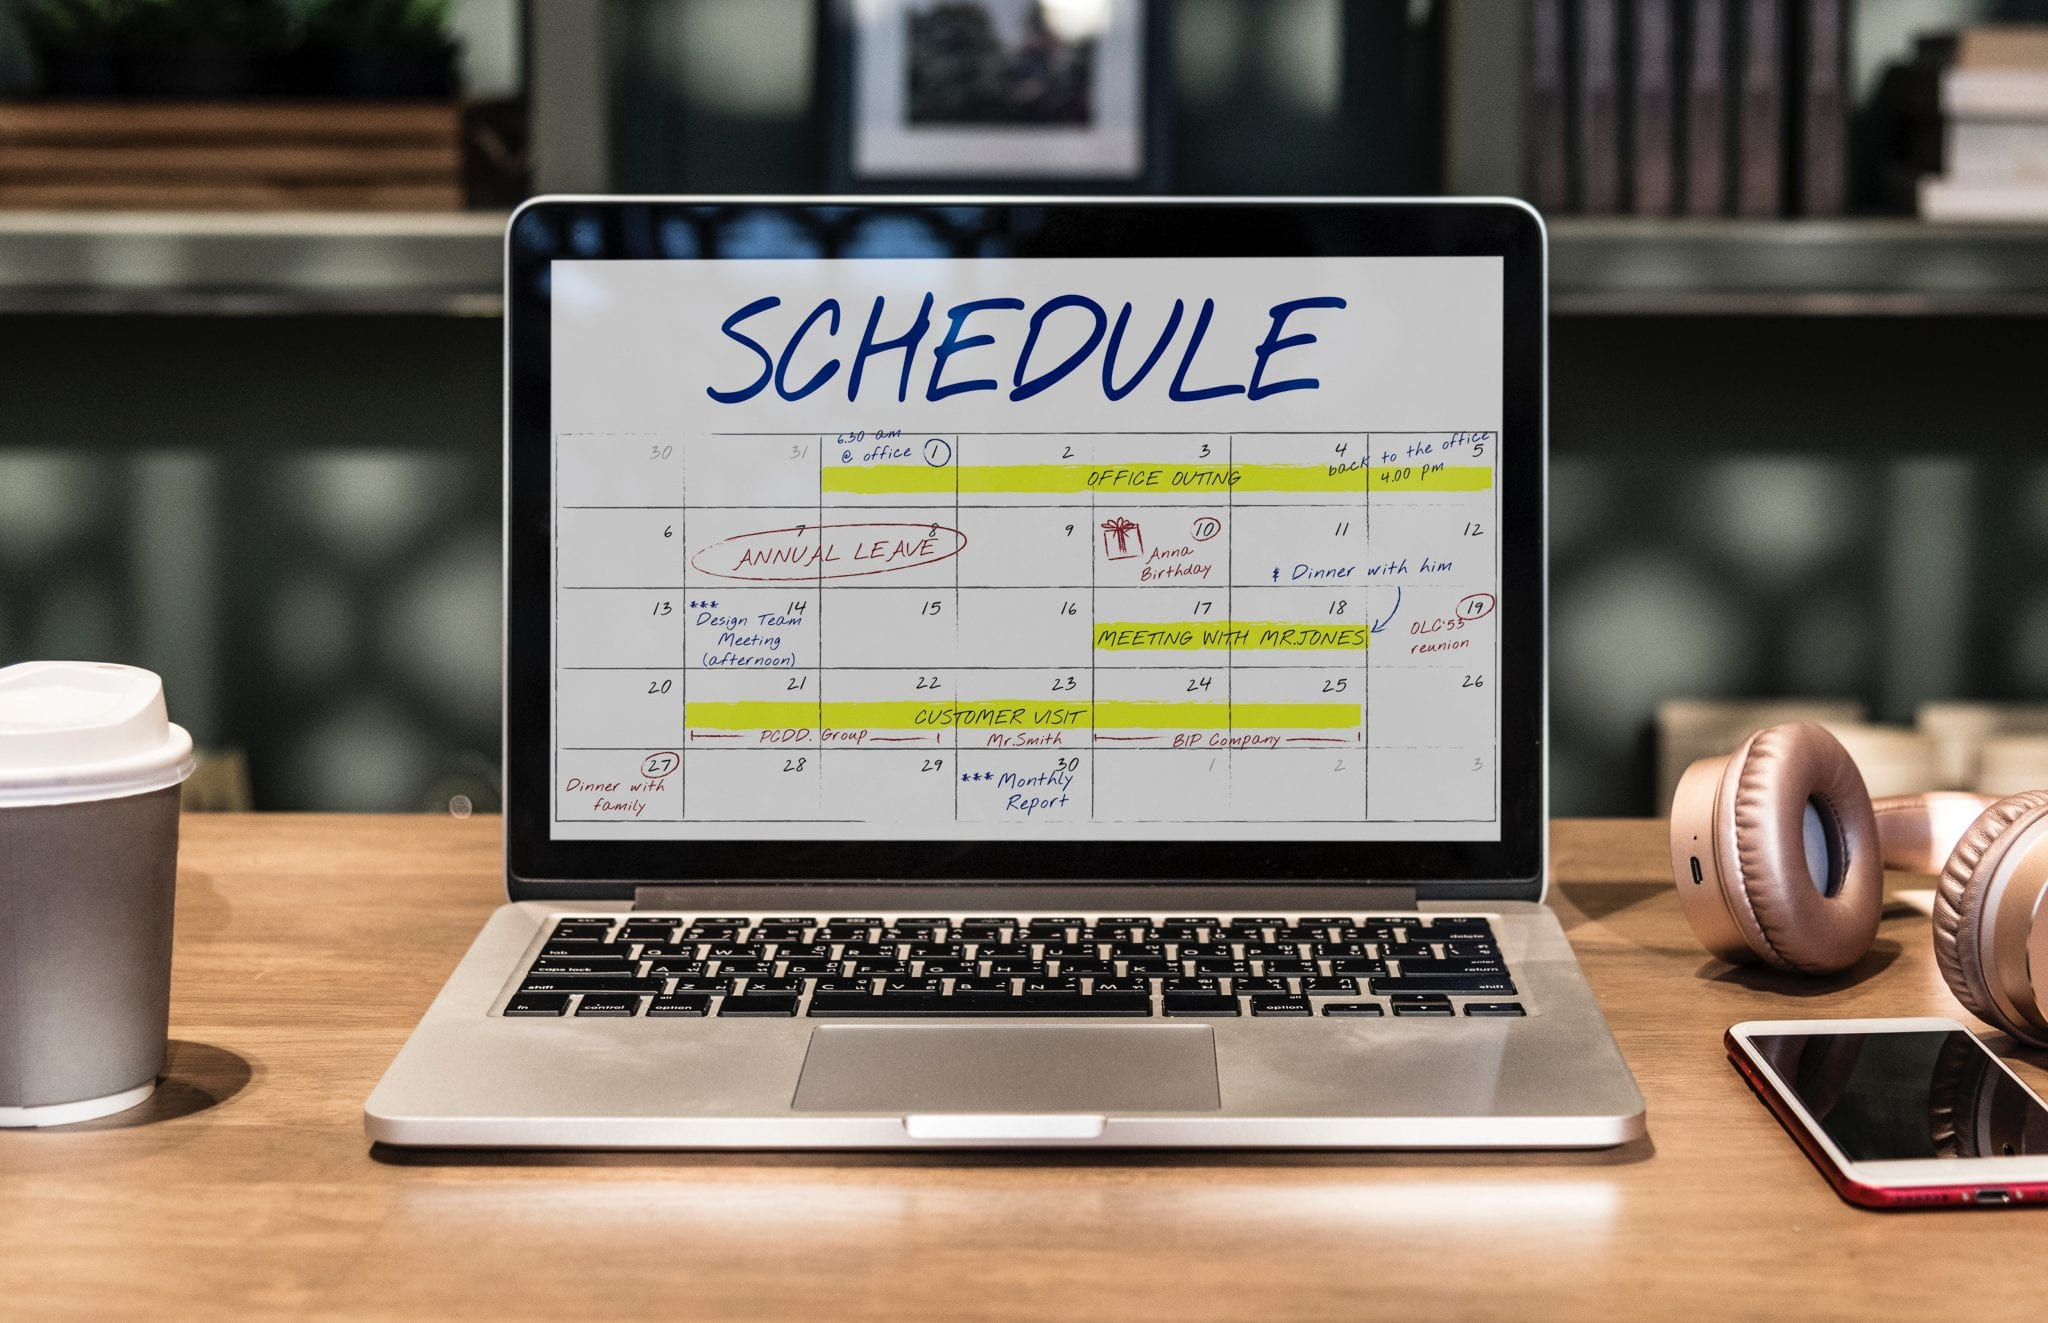 5 Scheduling Issues Your Clients Aren't Telling You About